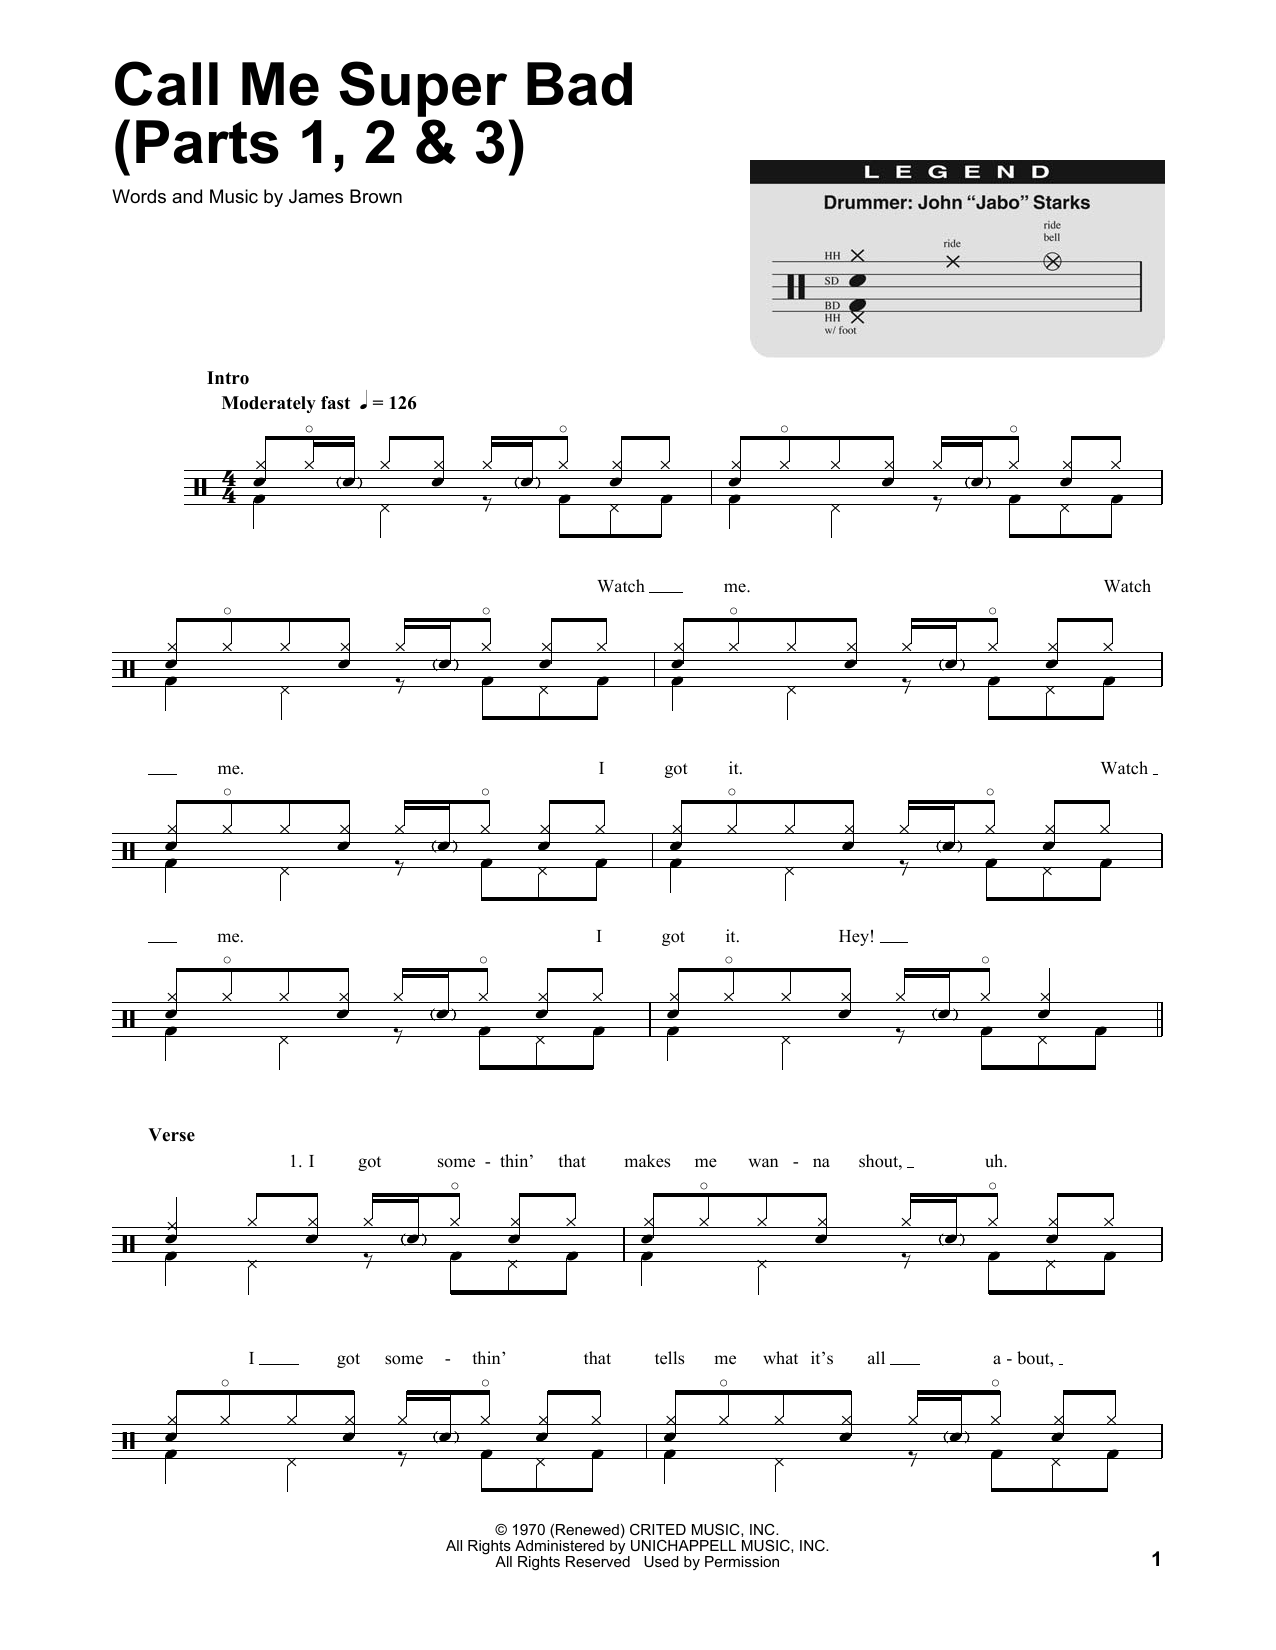 Call Me Super Bad (Parts 1, 2 & 3) (Drums Transcription)